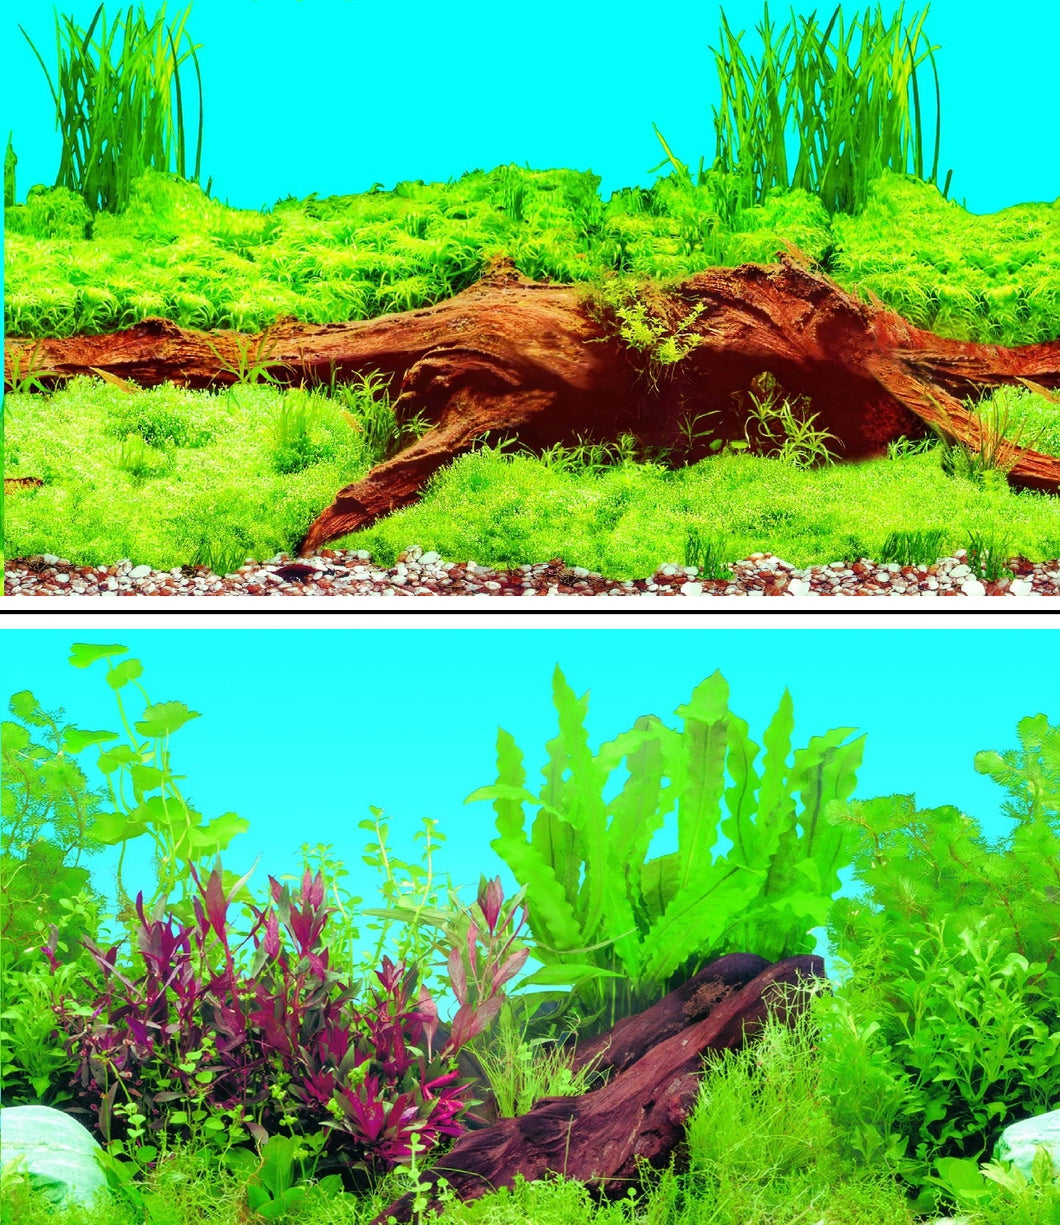 a double sided aquarium background with a large peice of bog wood surrounded by thick green plants on one side and a tropical green and red coloured plants on the other side